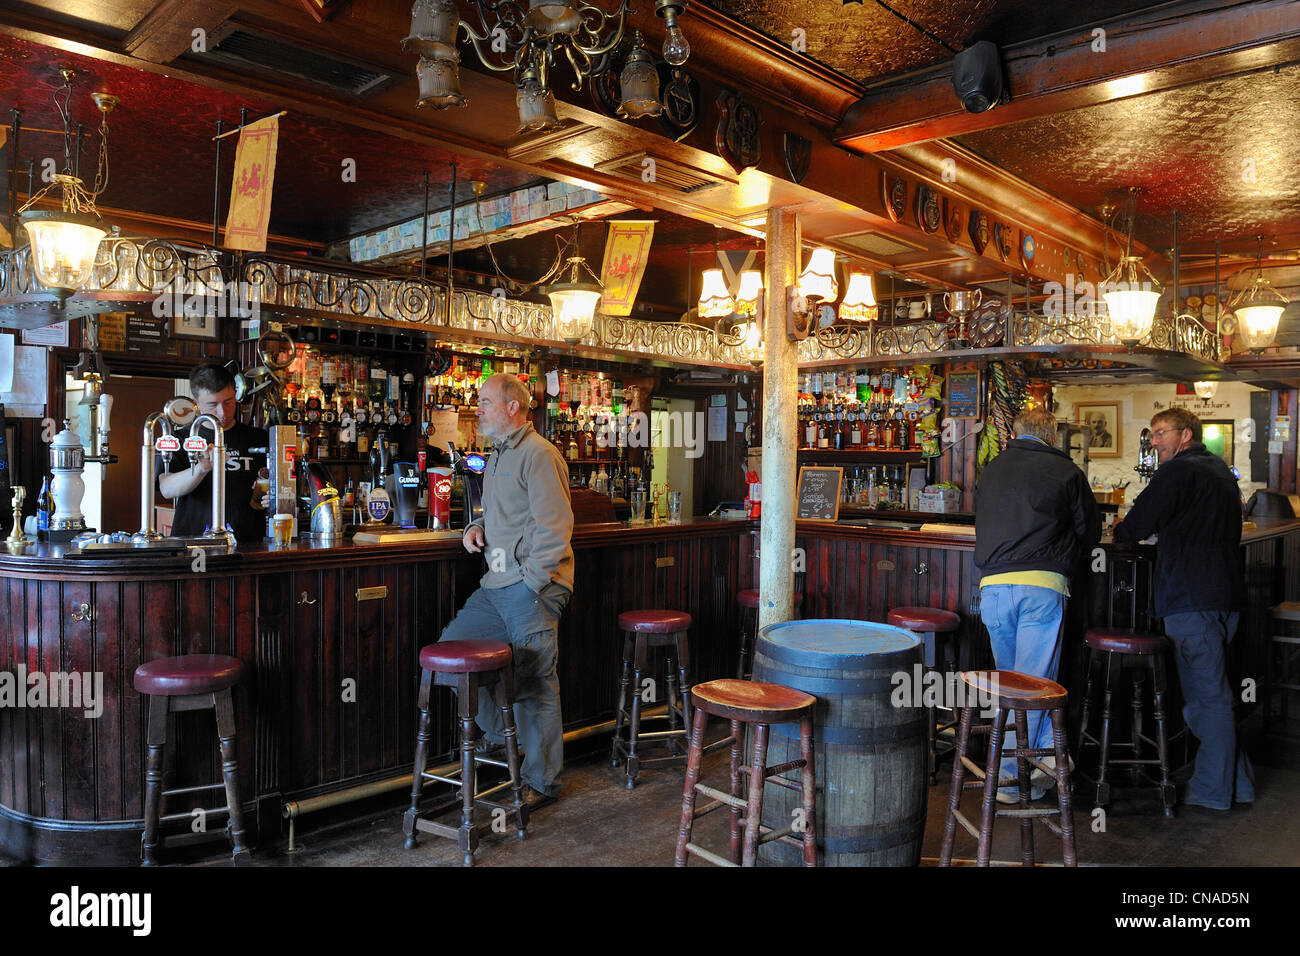 United Kingdom, Scotland, Highland, Inner Hebrides, Isle of Mull, Tobermory, the Mishnish hotel and pub - Stock Image